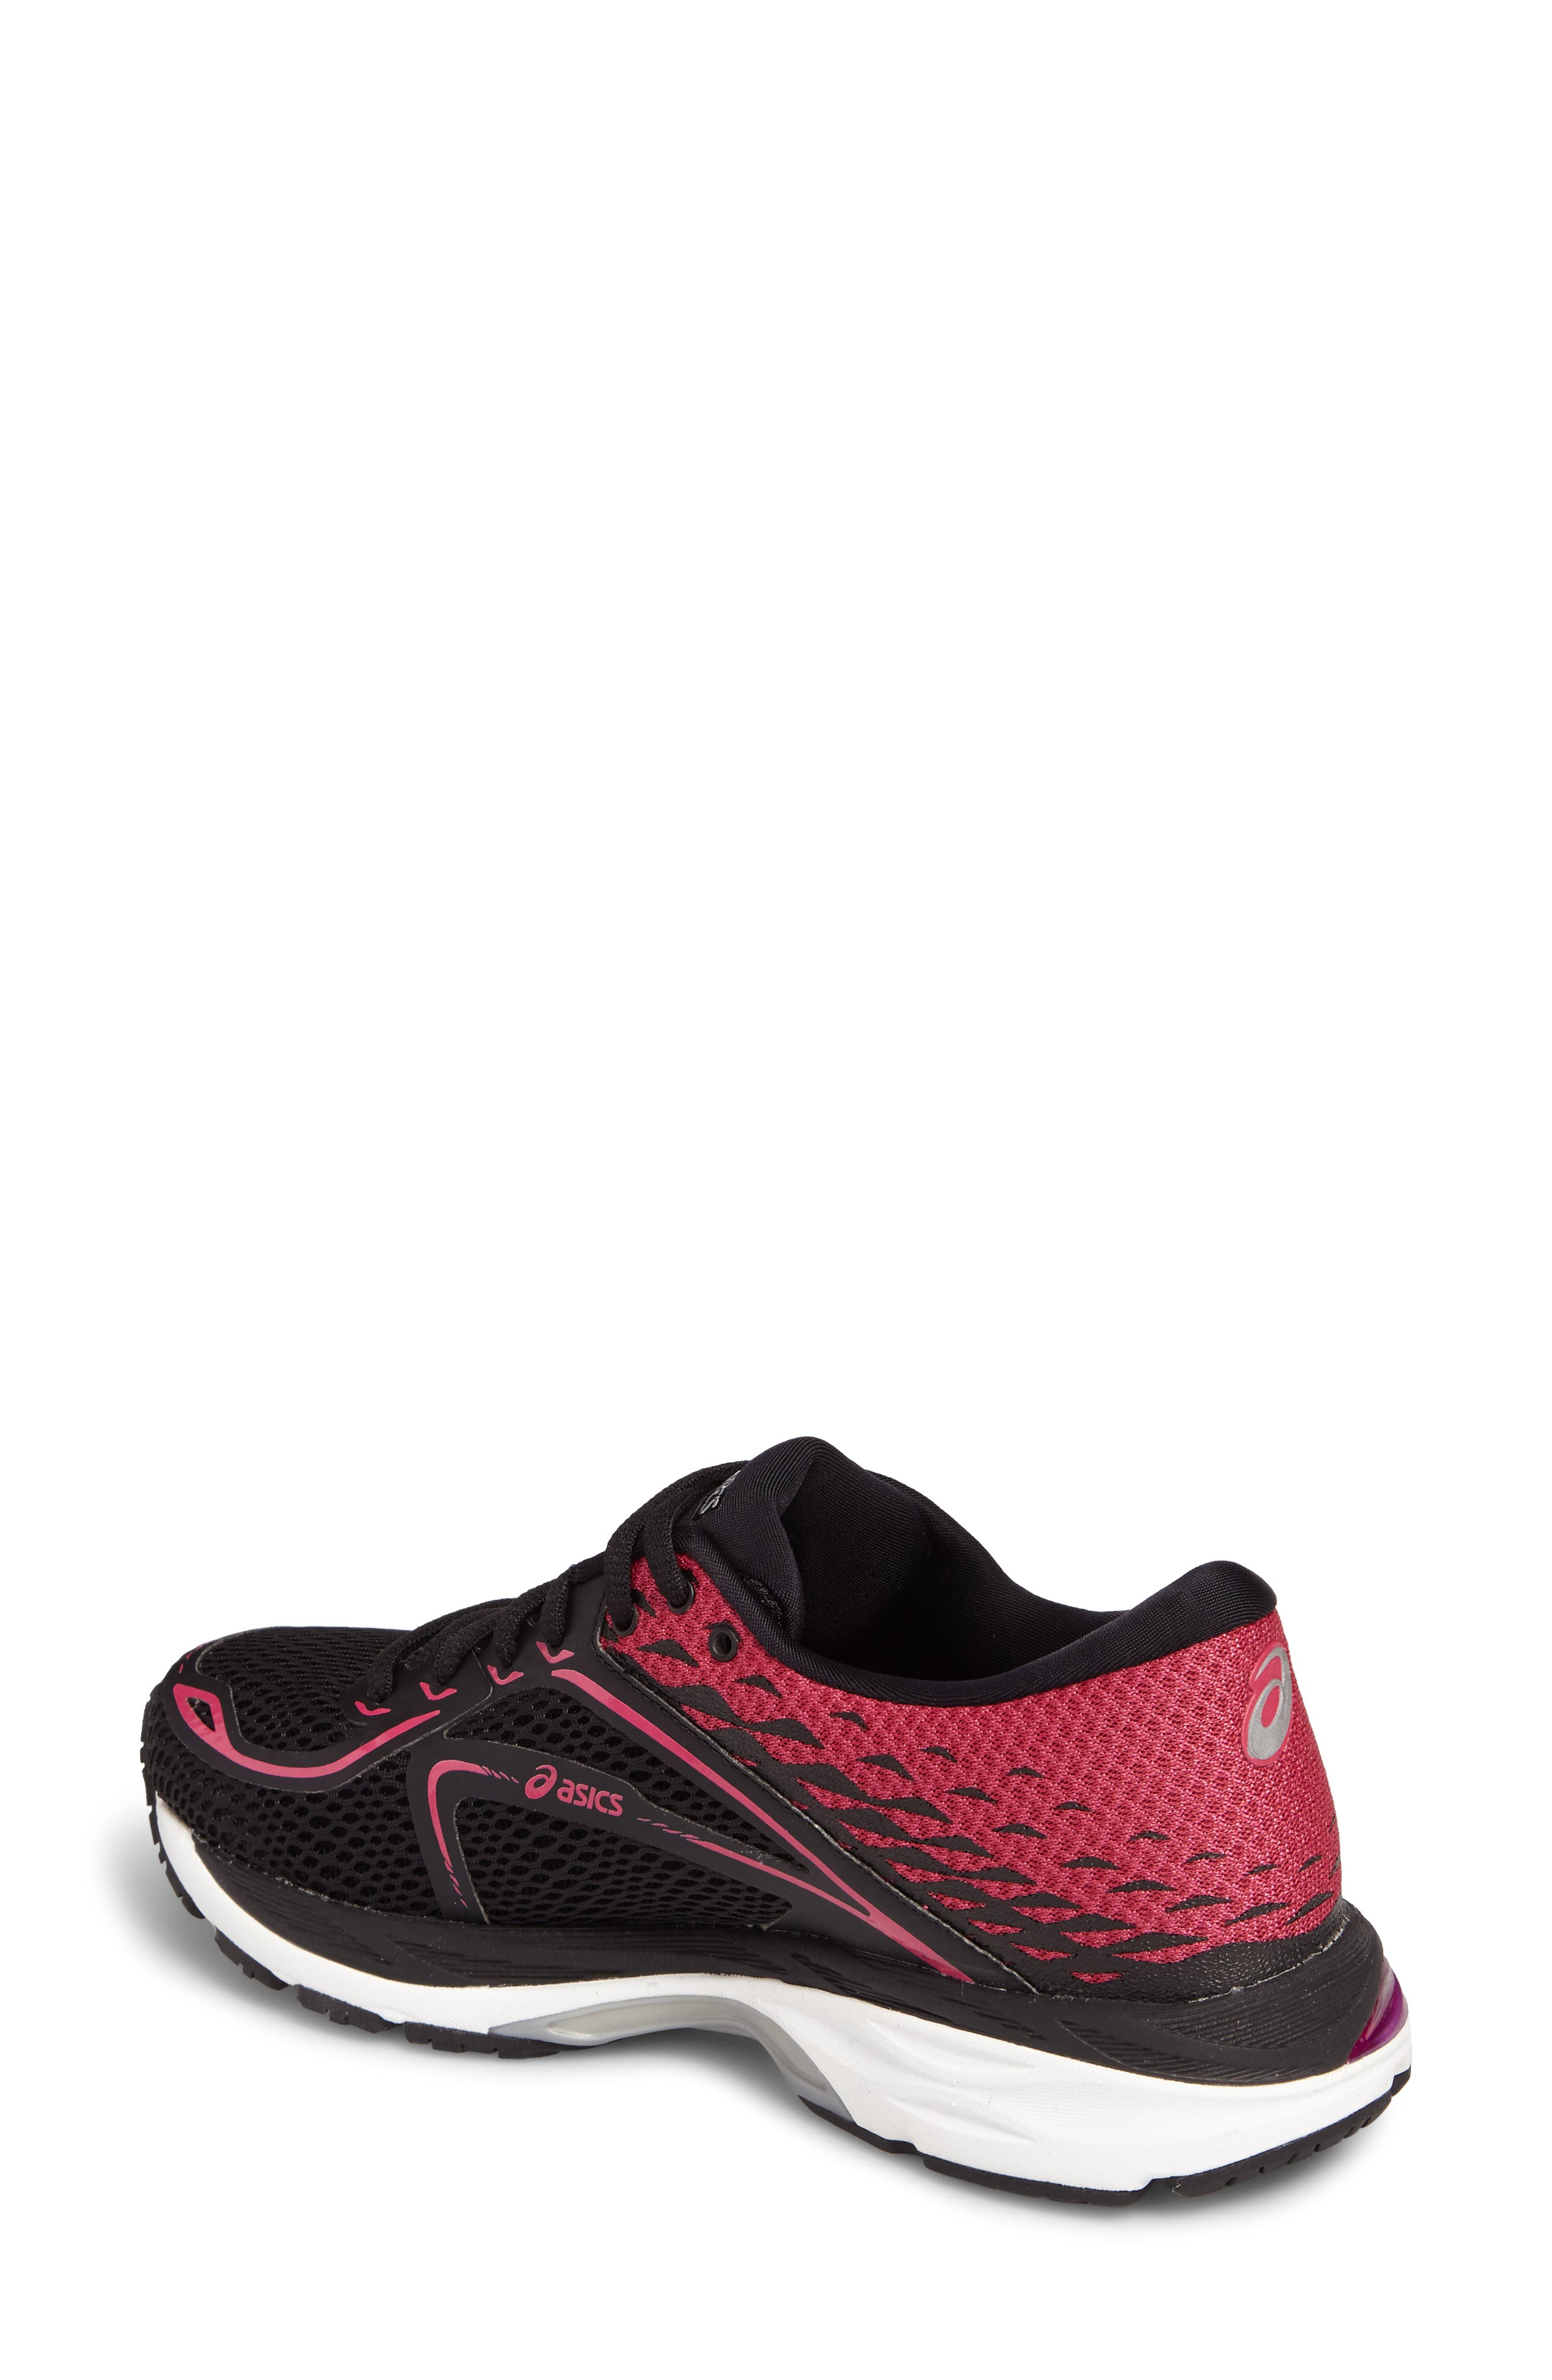 Gel Cumulus 19 2A Running Shoe,                             Alternate thumbnail 2, color,                             Black/ Silver/ Pink Peacock